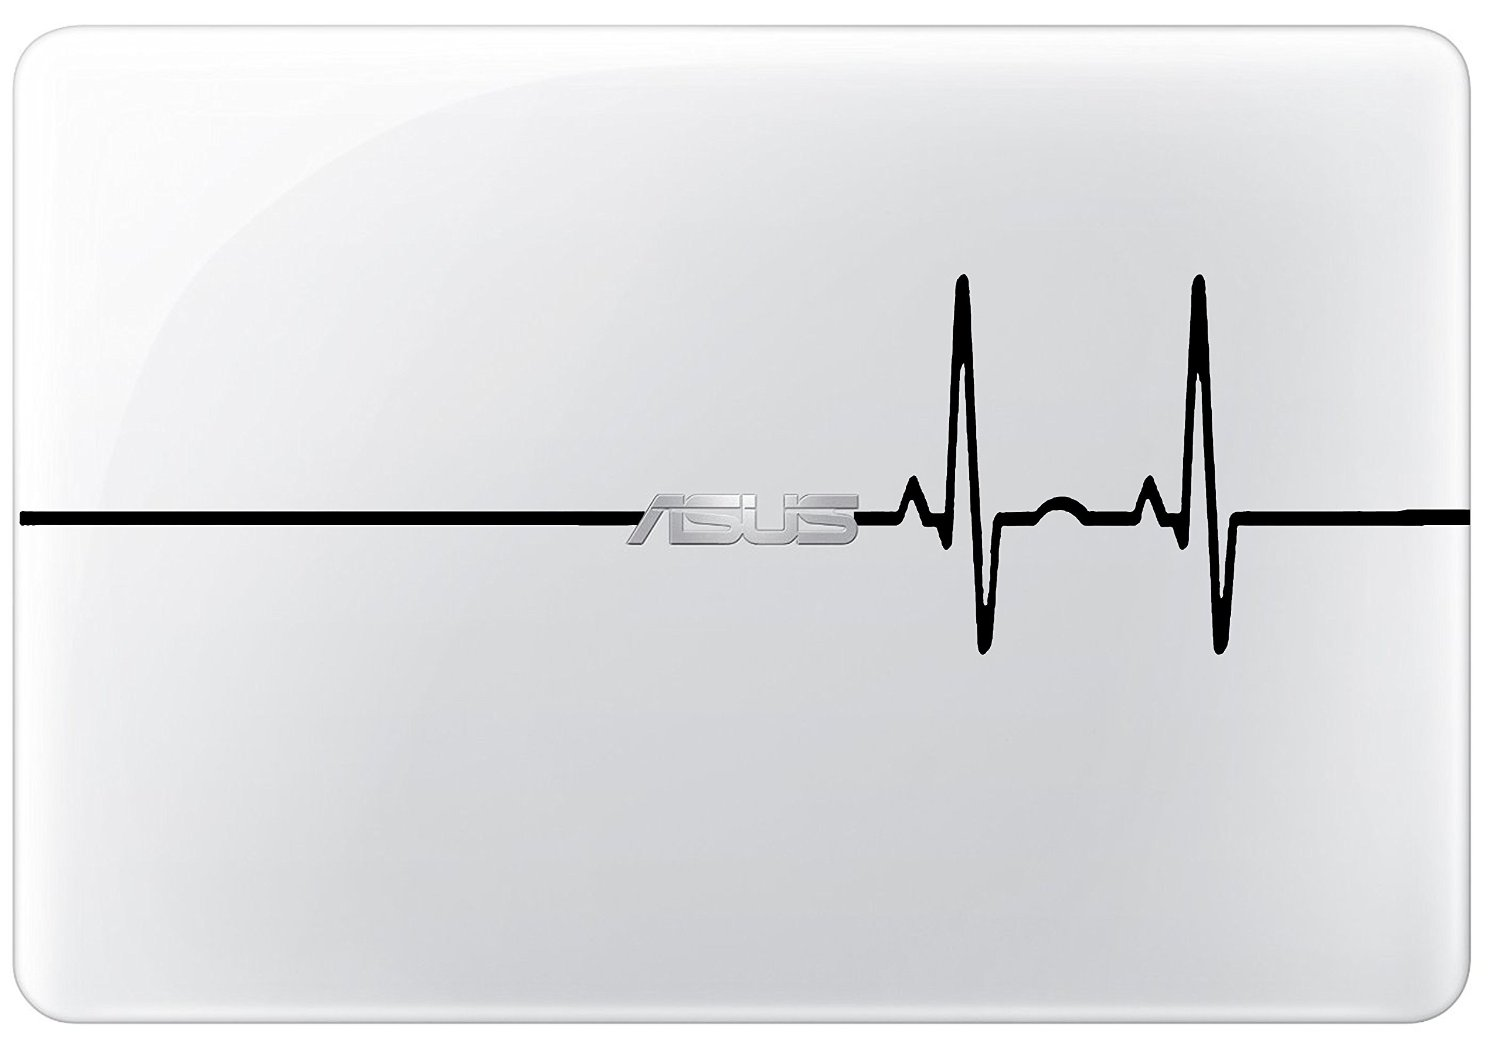 Heart Rate Laptop Decal Asus